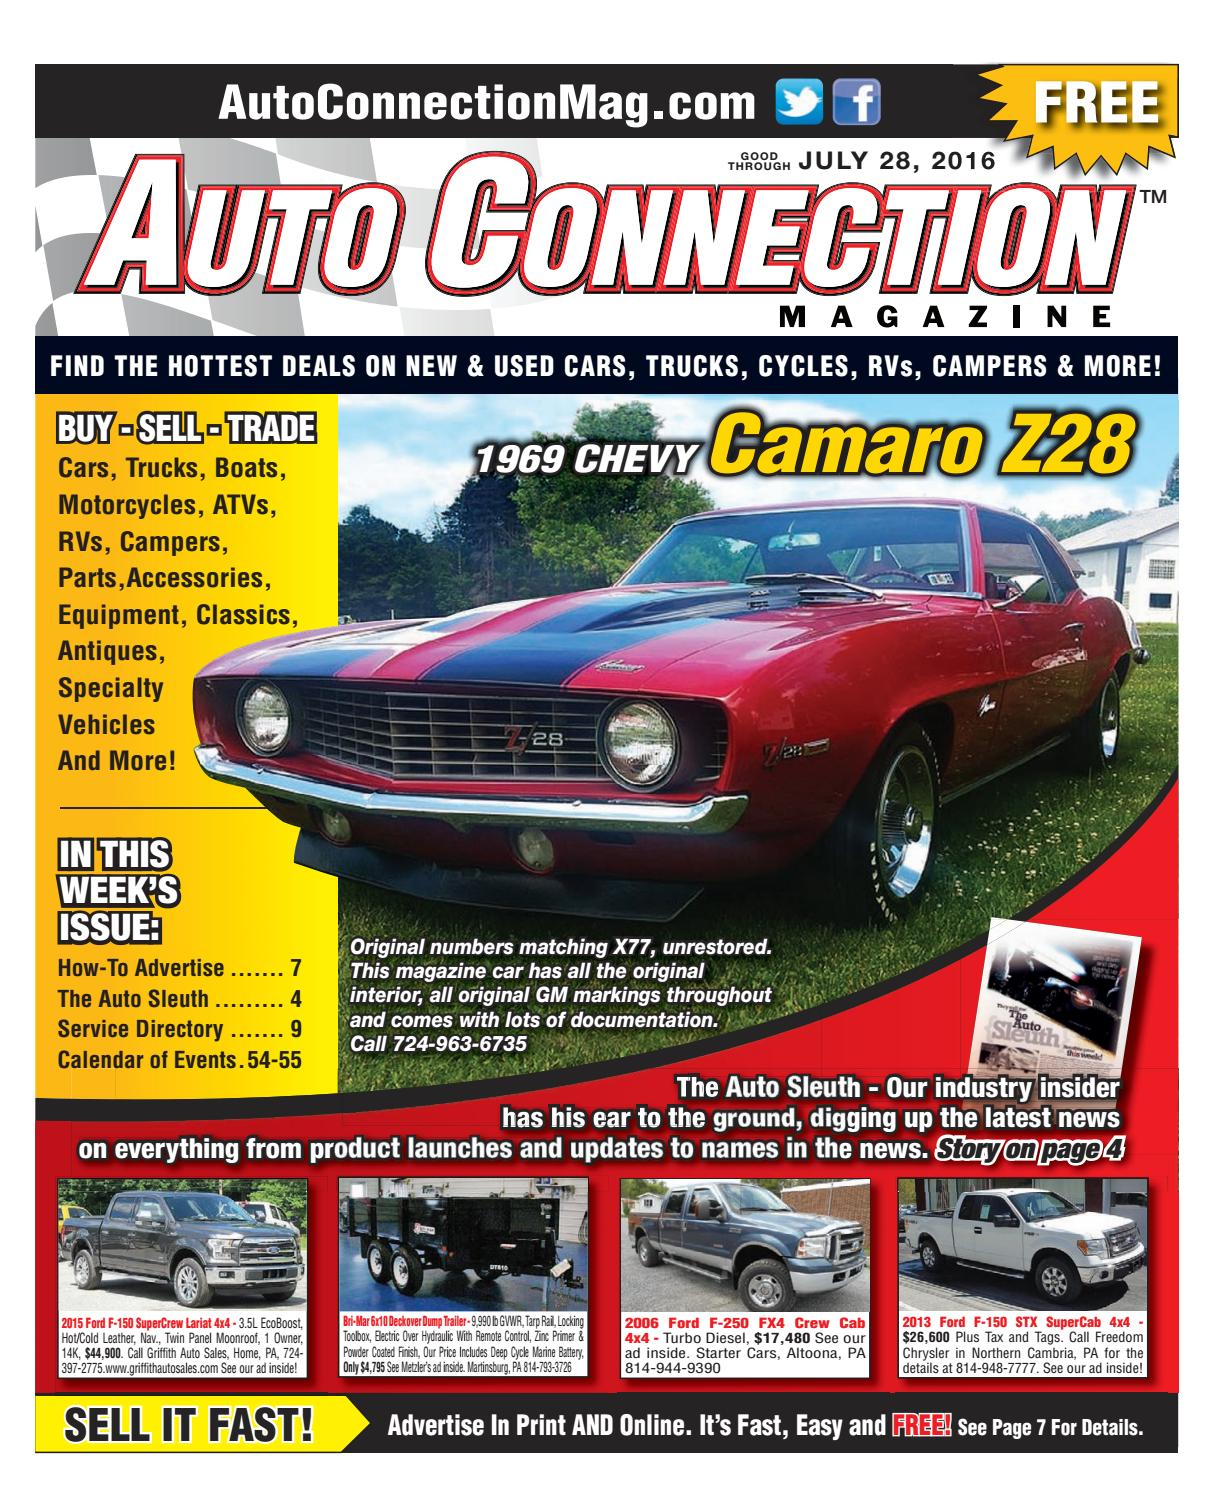 07 28 16 Auto Connection Magazine By Issuu Alternator Wiring Harness Concours 390 Xr7 Repro 1967